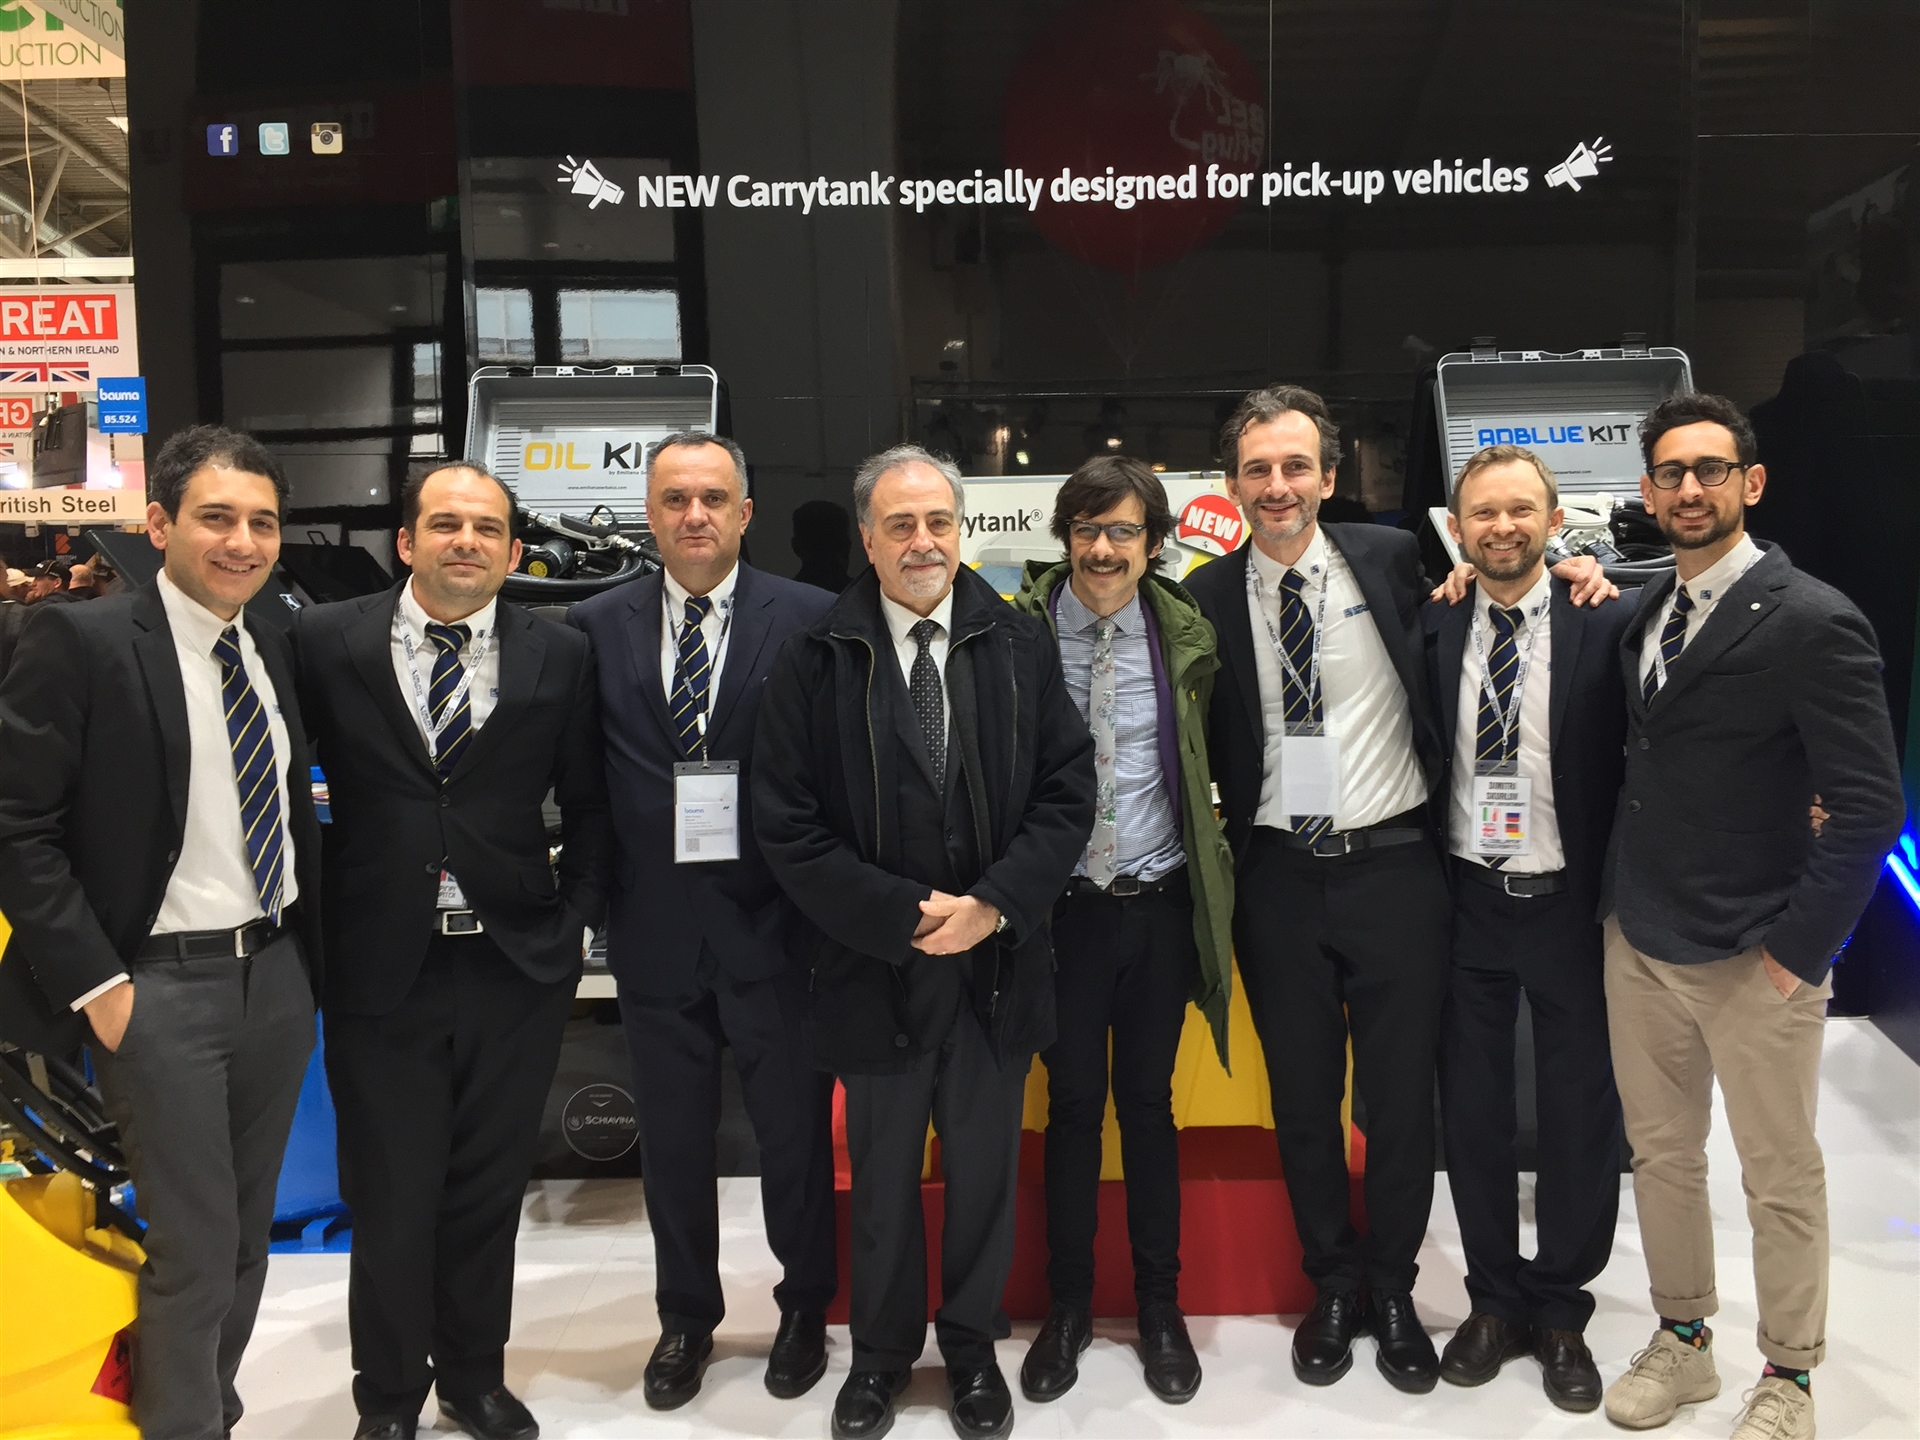 The Italian Consulate in Germany visits ES' stand at the Bauma exhibition